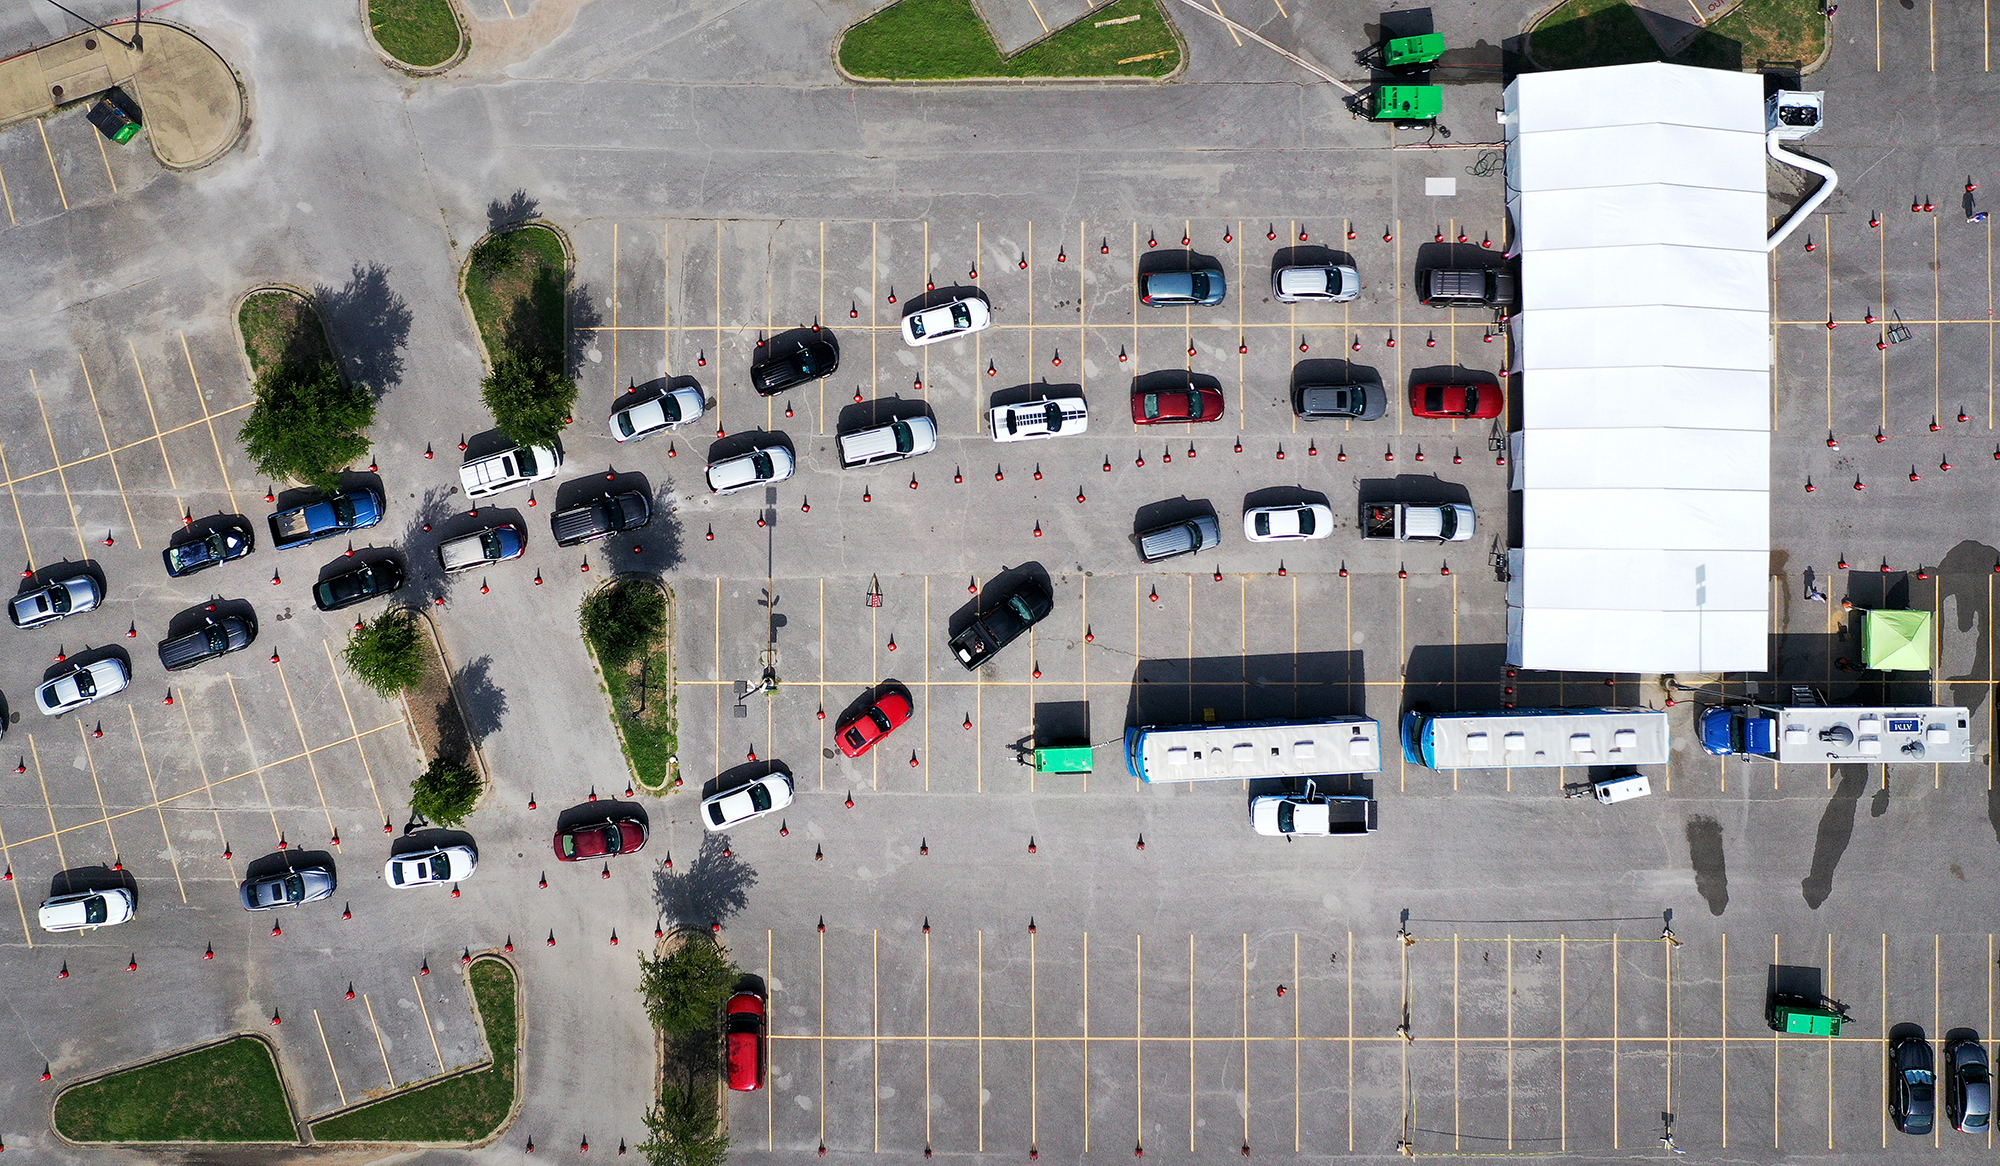 An aerial view from a drone as residents wait in line for the drive-thru COVID-19 testing center at the Ellis Davis Field House on July 2, 2020 in Dallas, Texas.